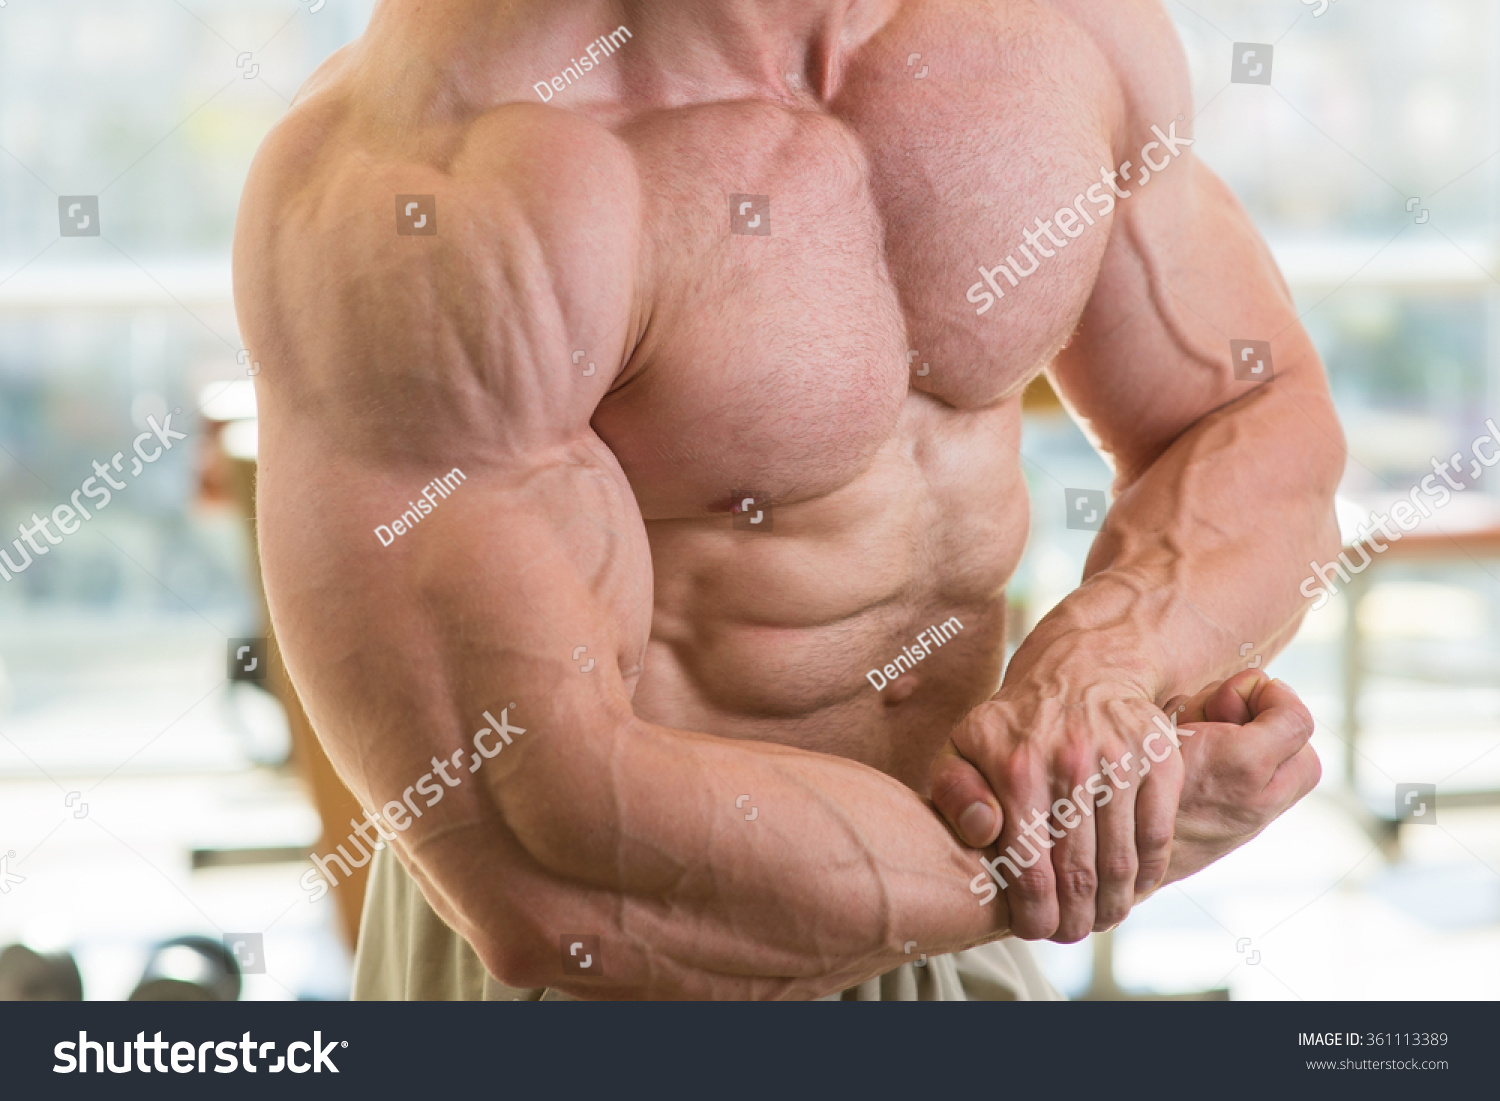 Muscular Torso Arms Bodybuilder Huge Muscles Stock Photo Royalty